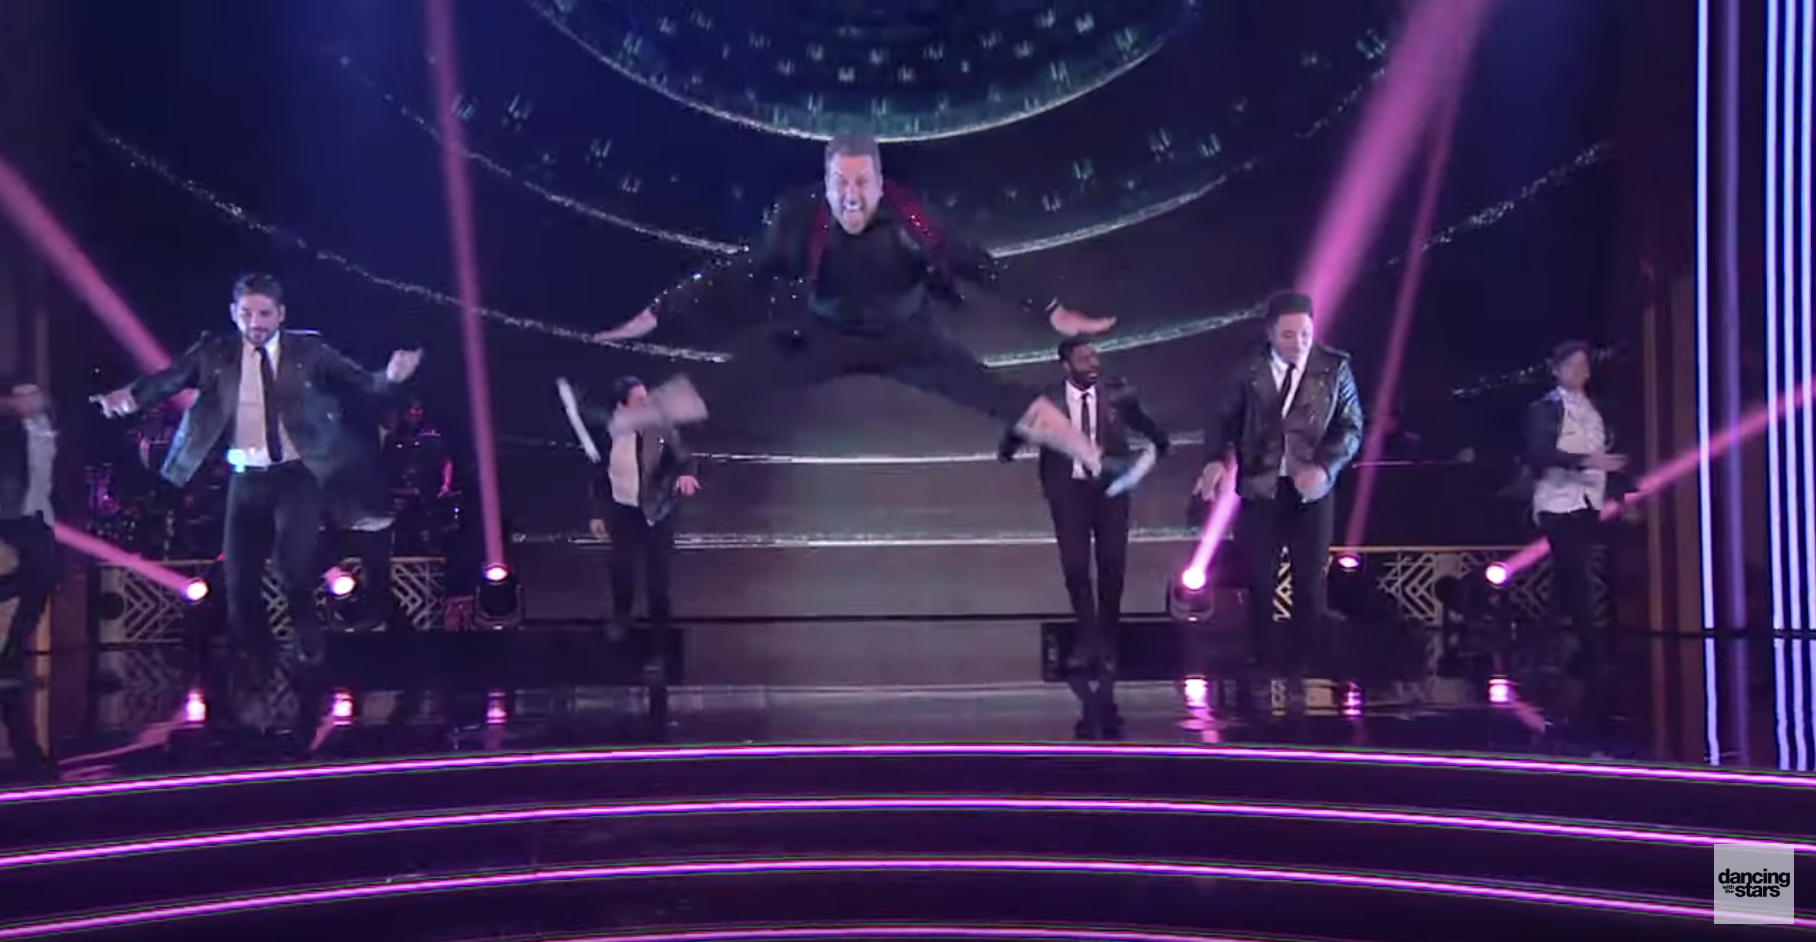 'DWTS' Guest Star Joey Fatone Split His Pants During the Show, But You Probably Missed It